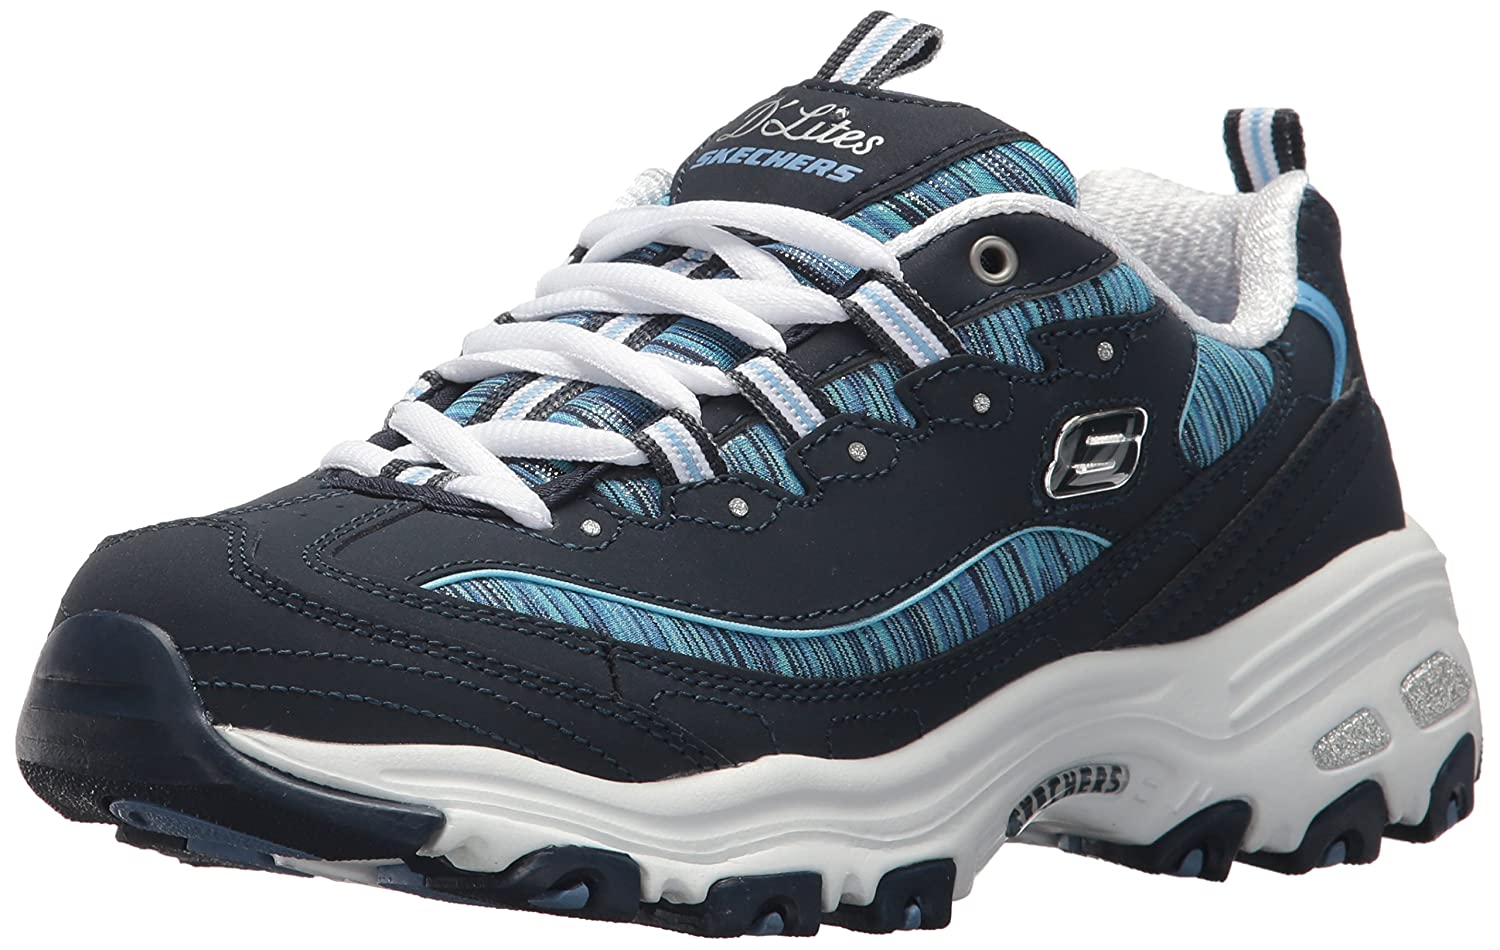 Skechers Women's DLites Interlude Sneaker B074HBWK3G 7 B(M) US|Navy Blue-50